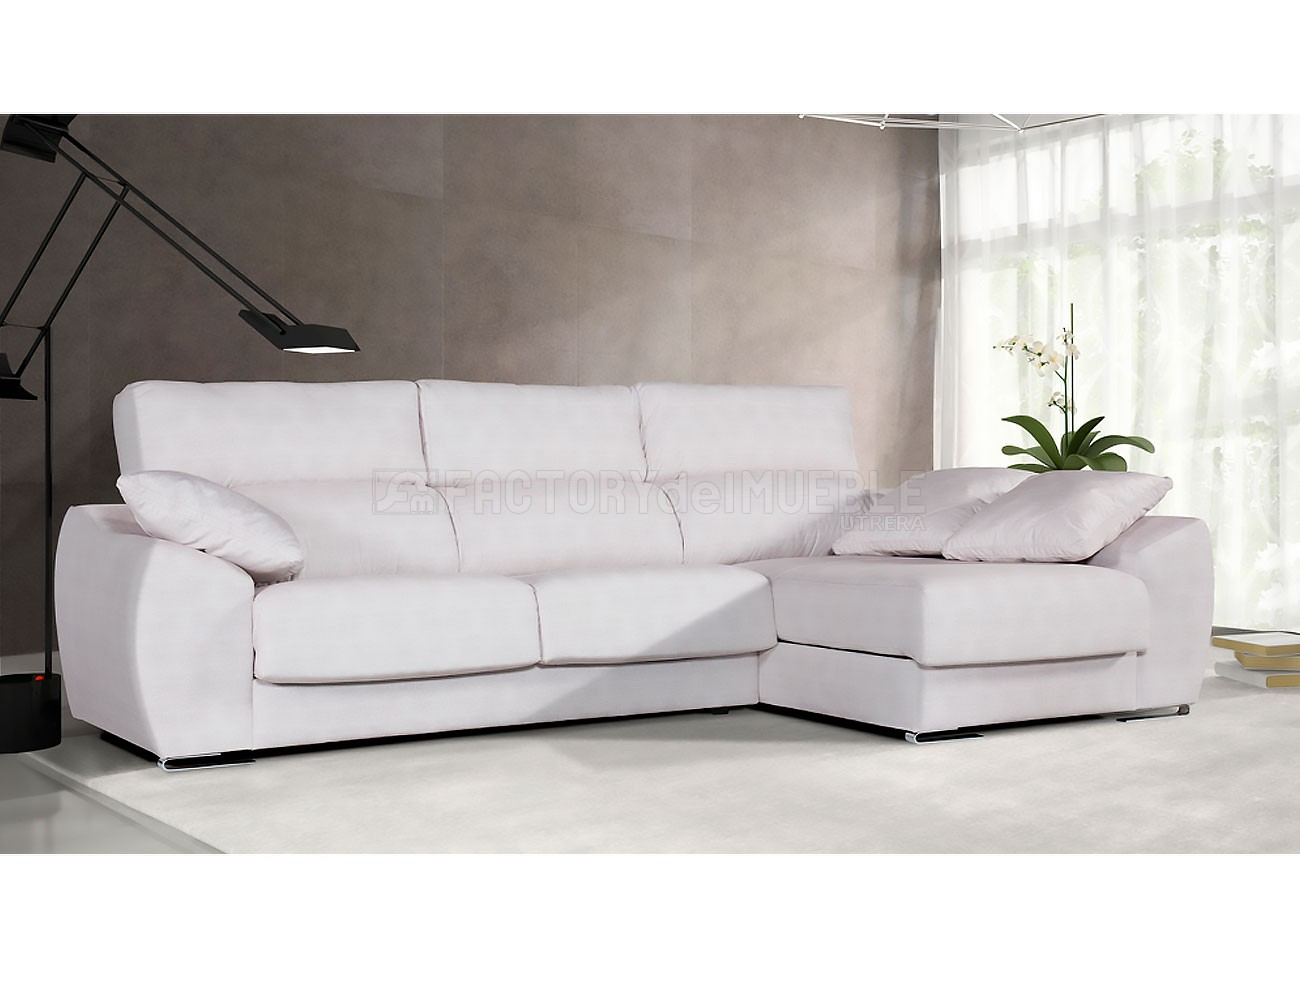 Sofa chaiselongue tosca6